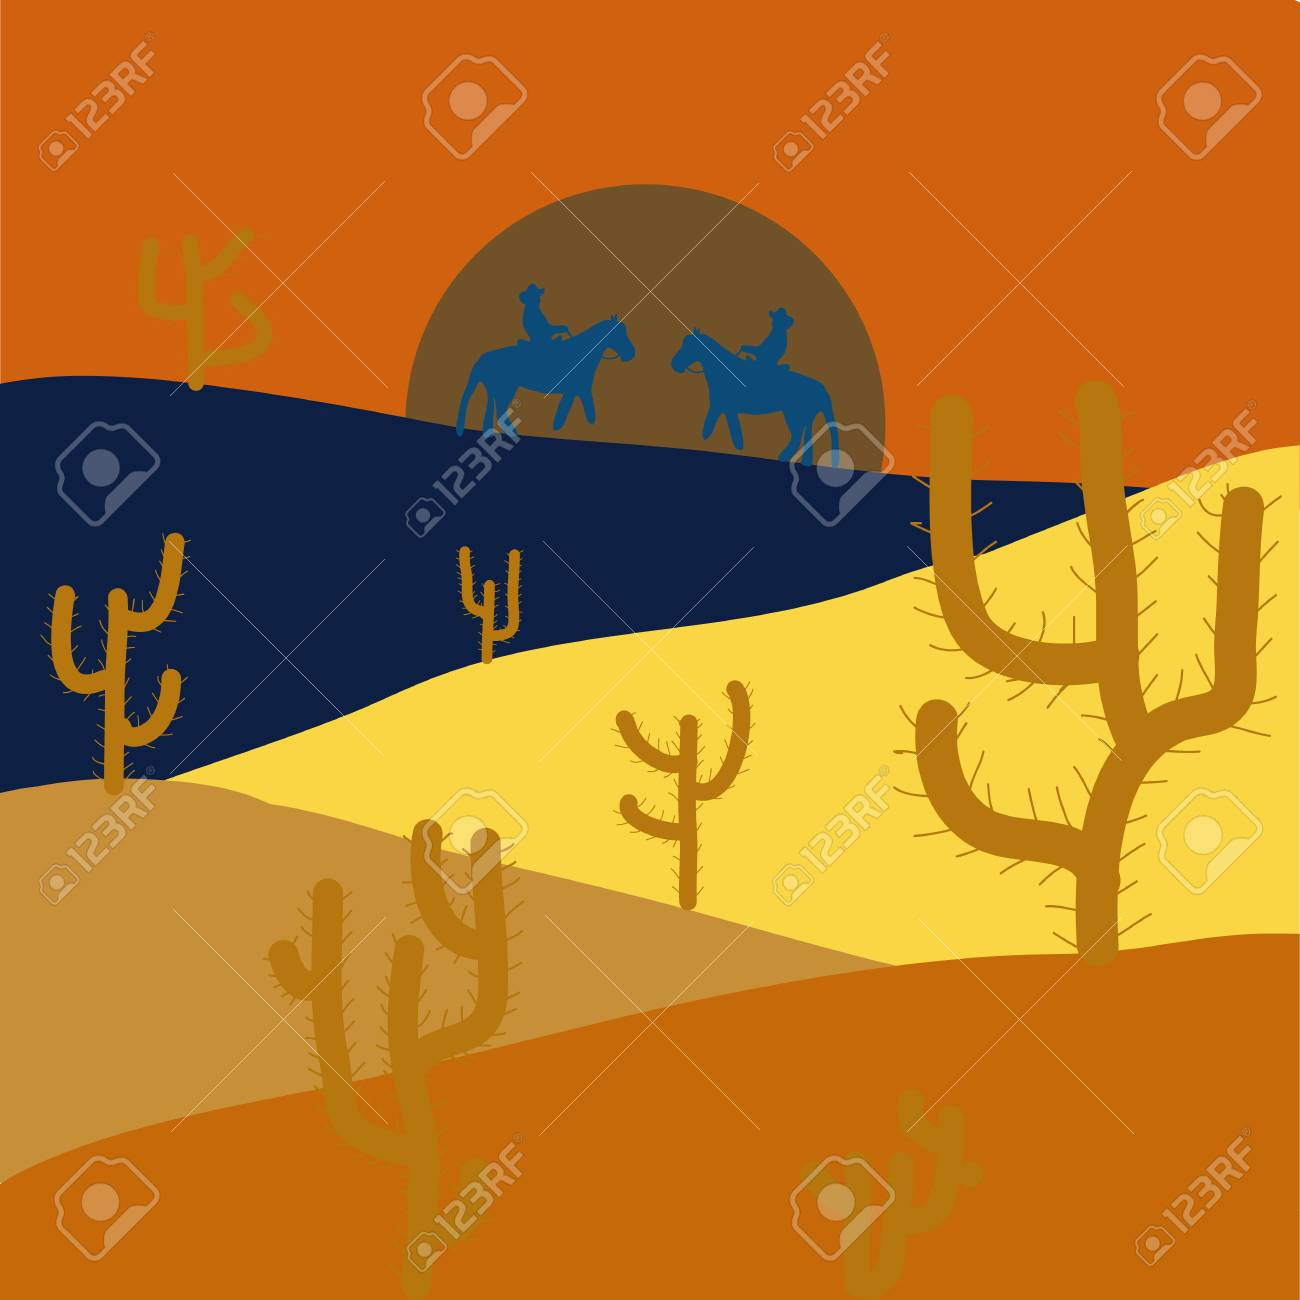 Back to nature. Design on orange, yellow and blue colors. Horizon line with sky. Extreme tourism and traveling. Desert trip. Sands. Birds. Mountains. Exploring Africa. Vector illustration. - 110172782